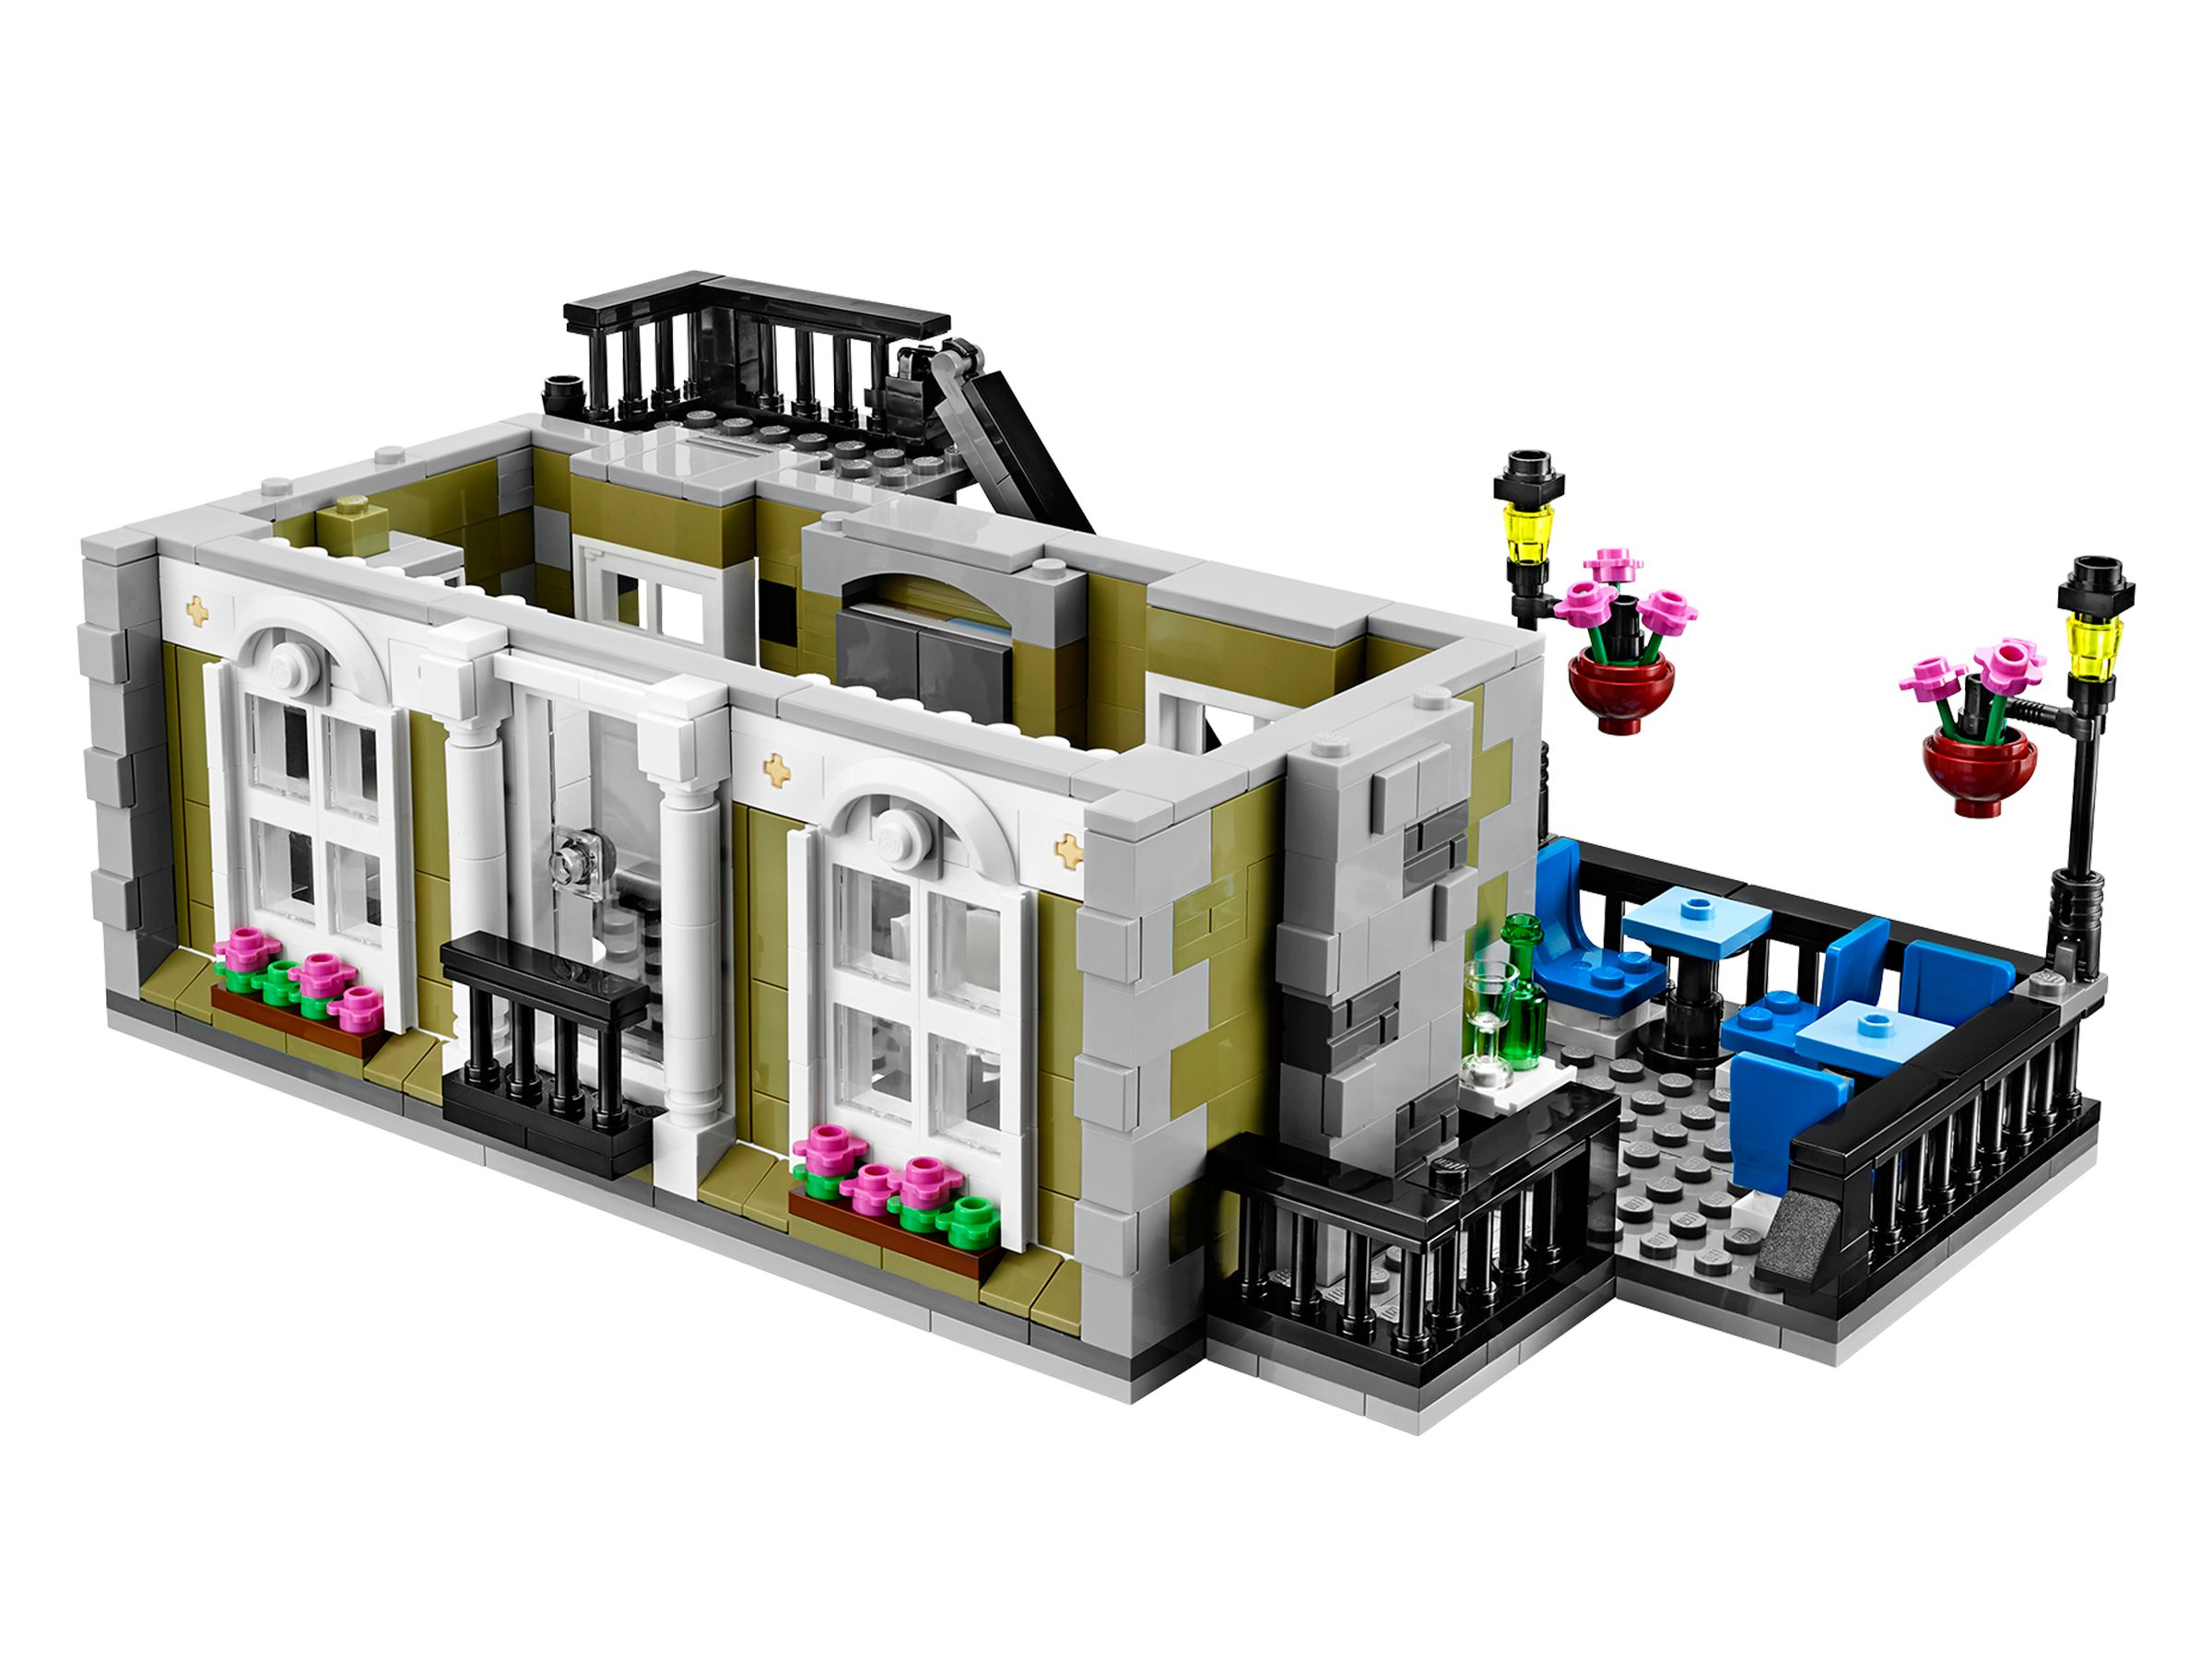 LEGO Advanced Models 10243 Pariser Restaurant LEGO_10243_alt4.jpg